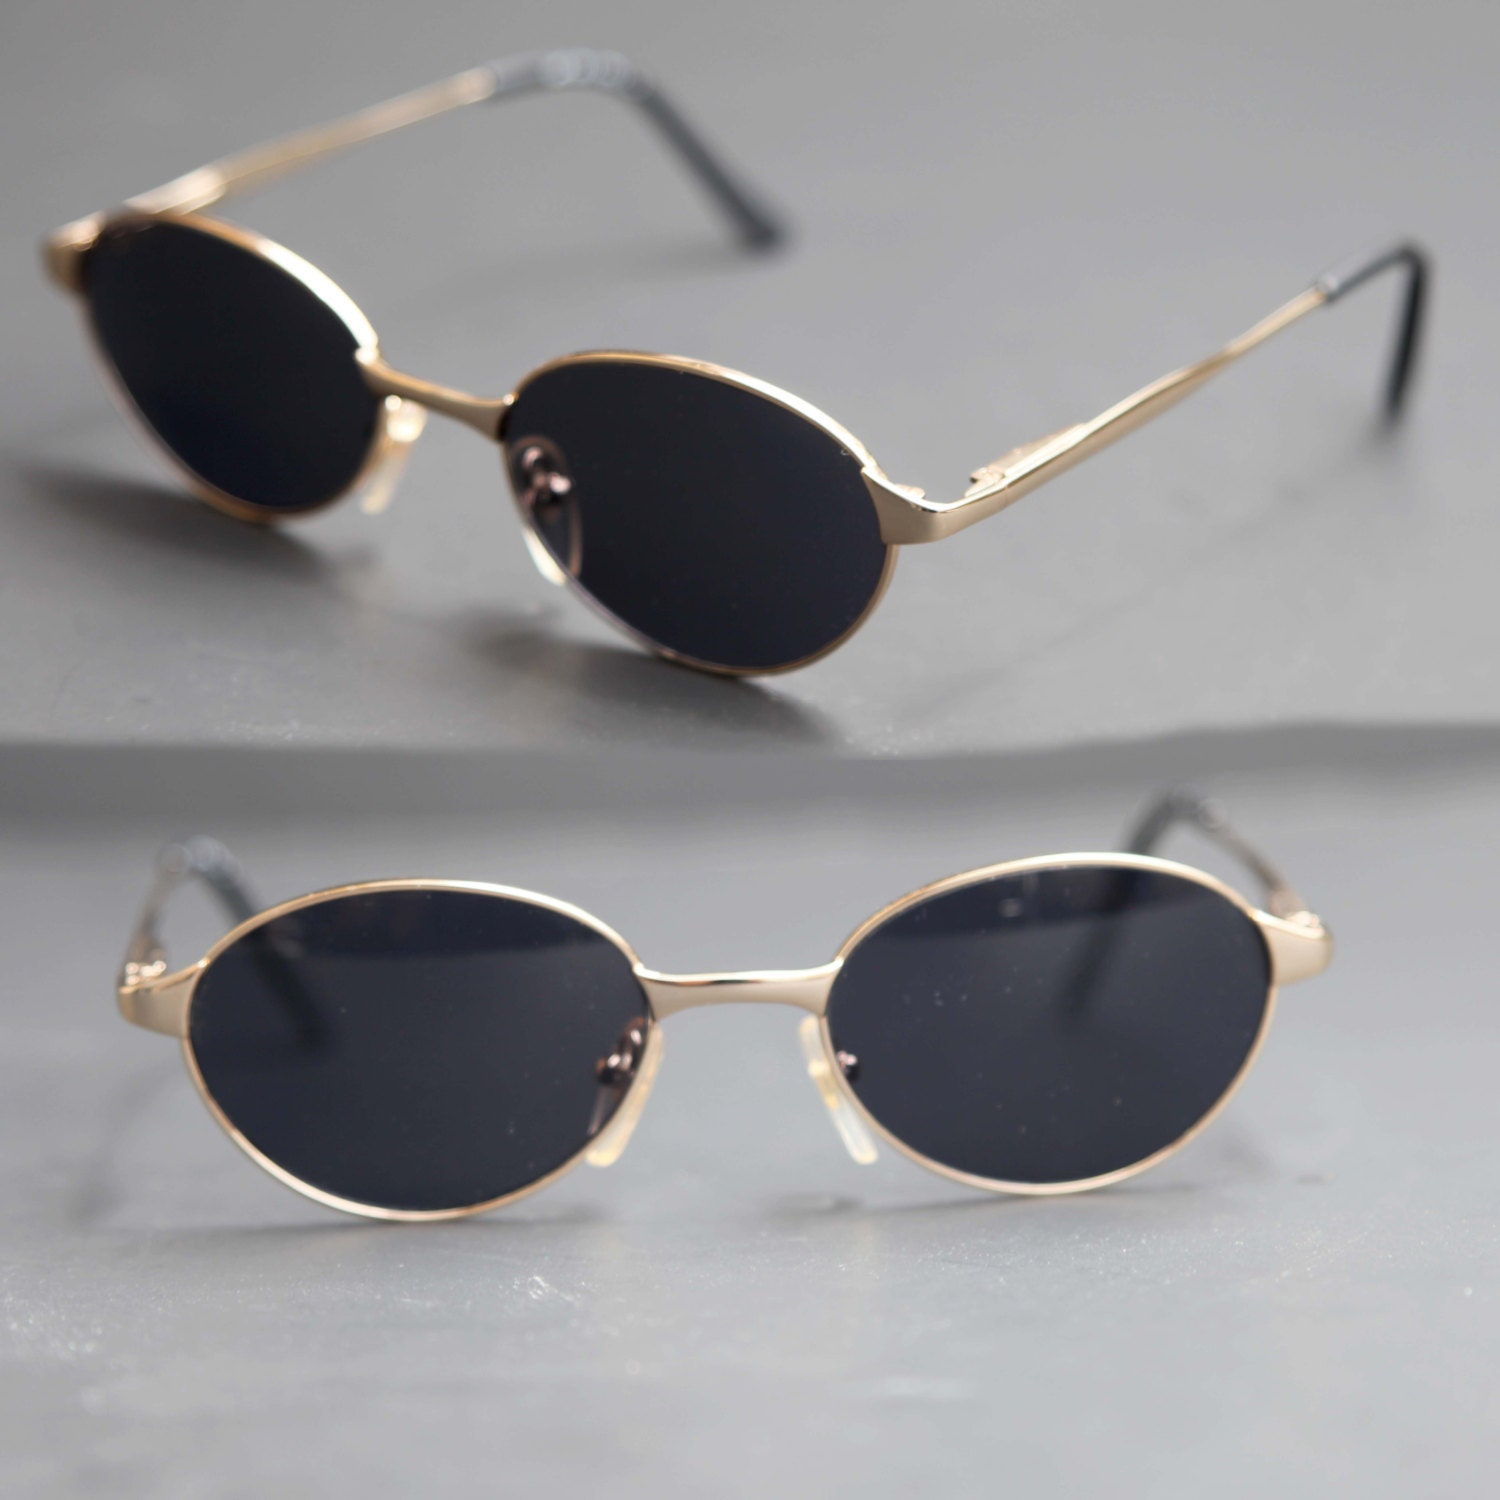 Gold Frame Oval Sunglasses : 80s Oval Sunglasses DKNY Gold Wire Rim with Dark Lenses Light